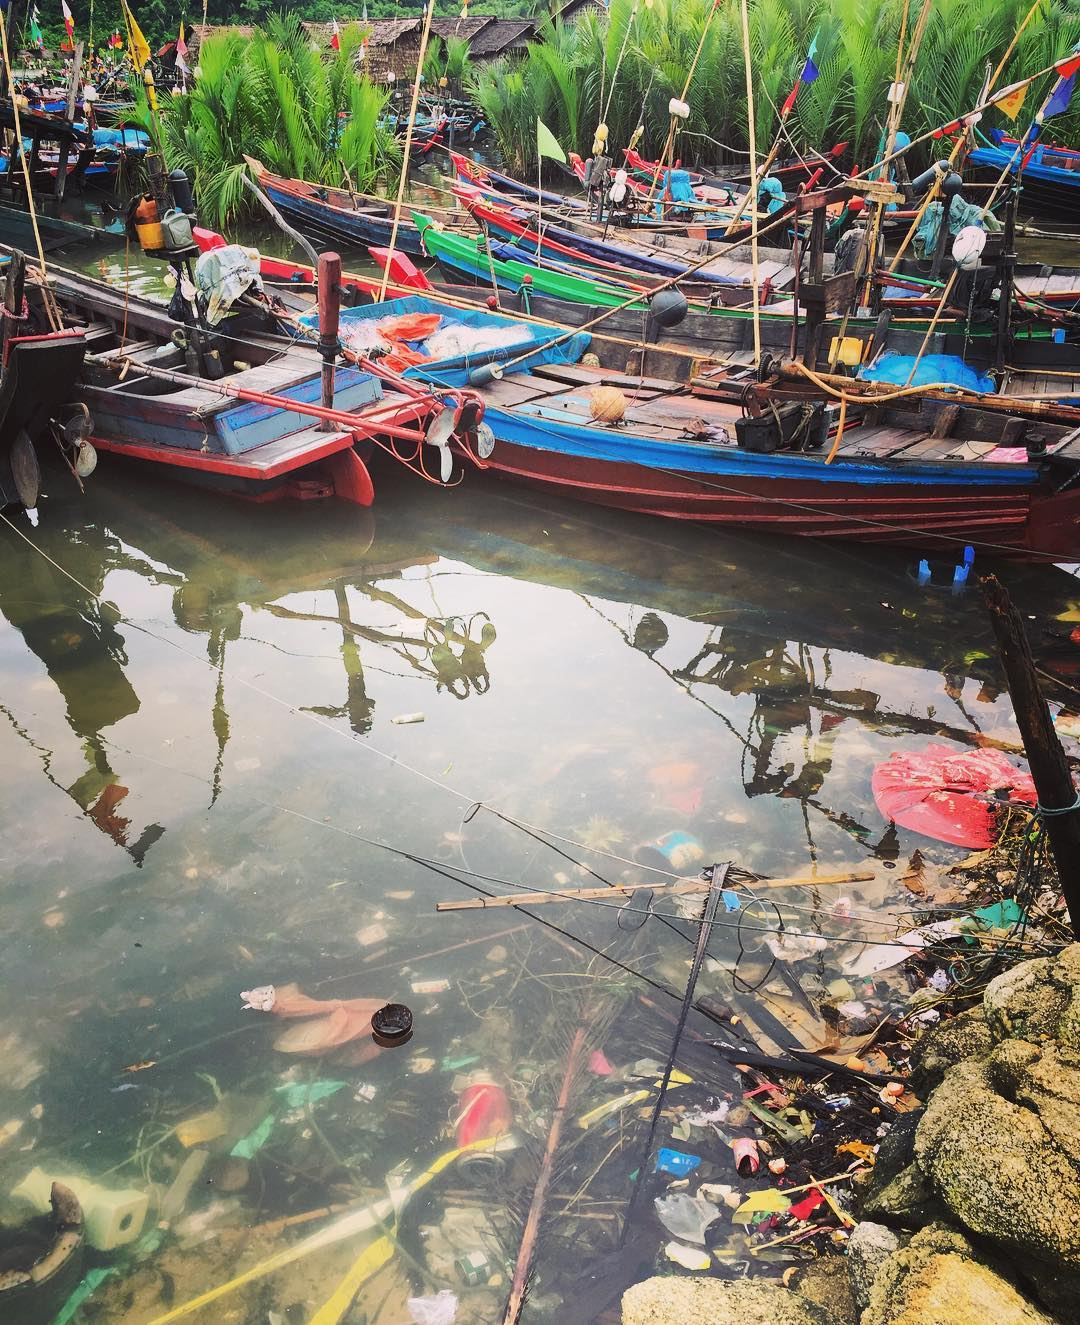 Lots of #color at the water's edge in the villages we were there in #Myanmar to visit... ⛵️ Beautiful & Heartbreaking all at the same time - but what a great place to start with to begin a positive impact.